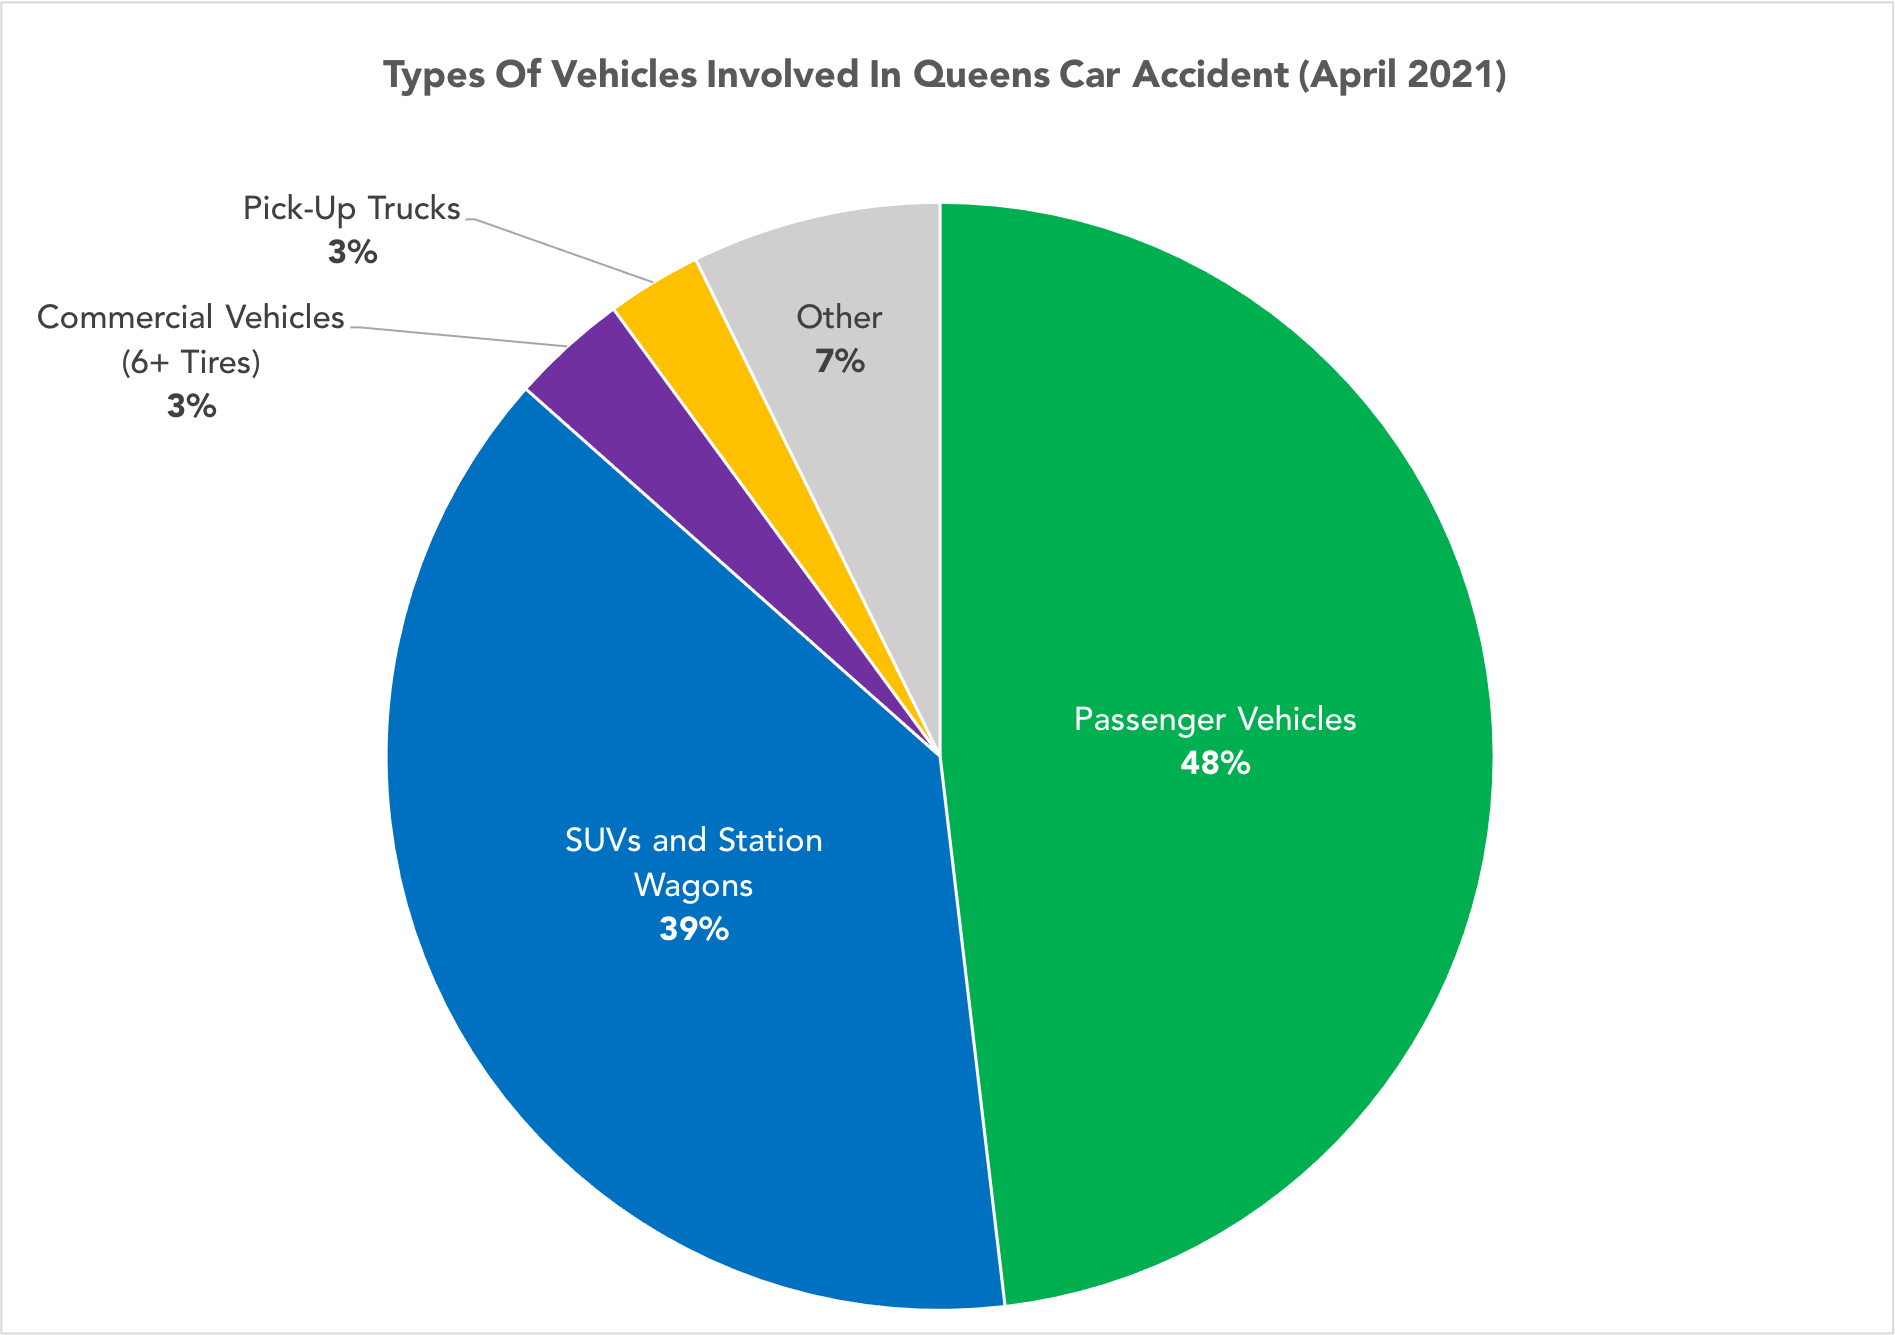 pie chart of the different types of vehicles involved in Queens car accidents